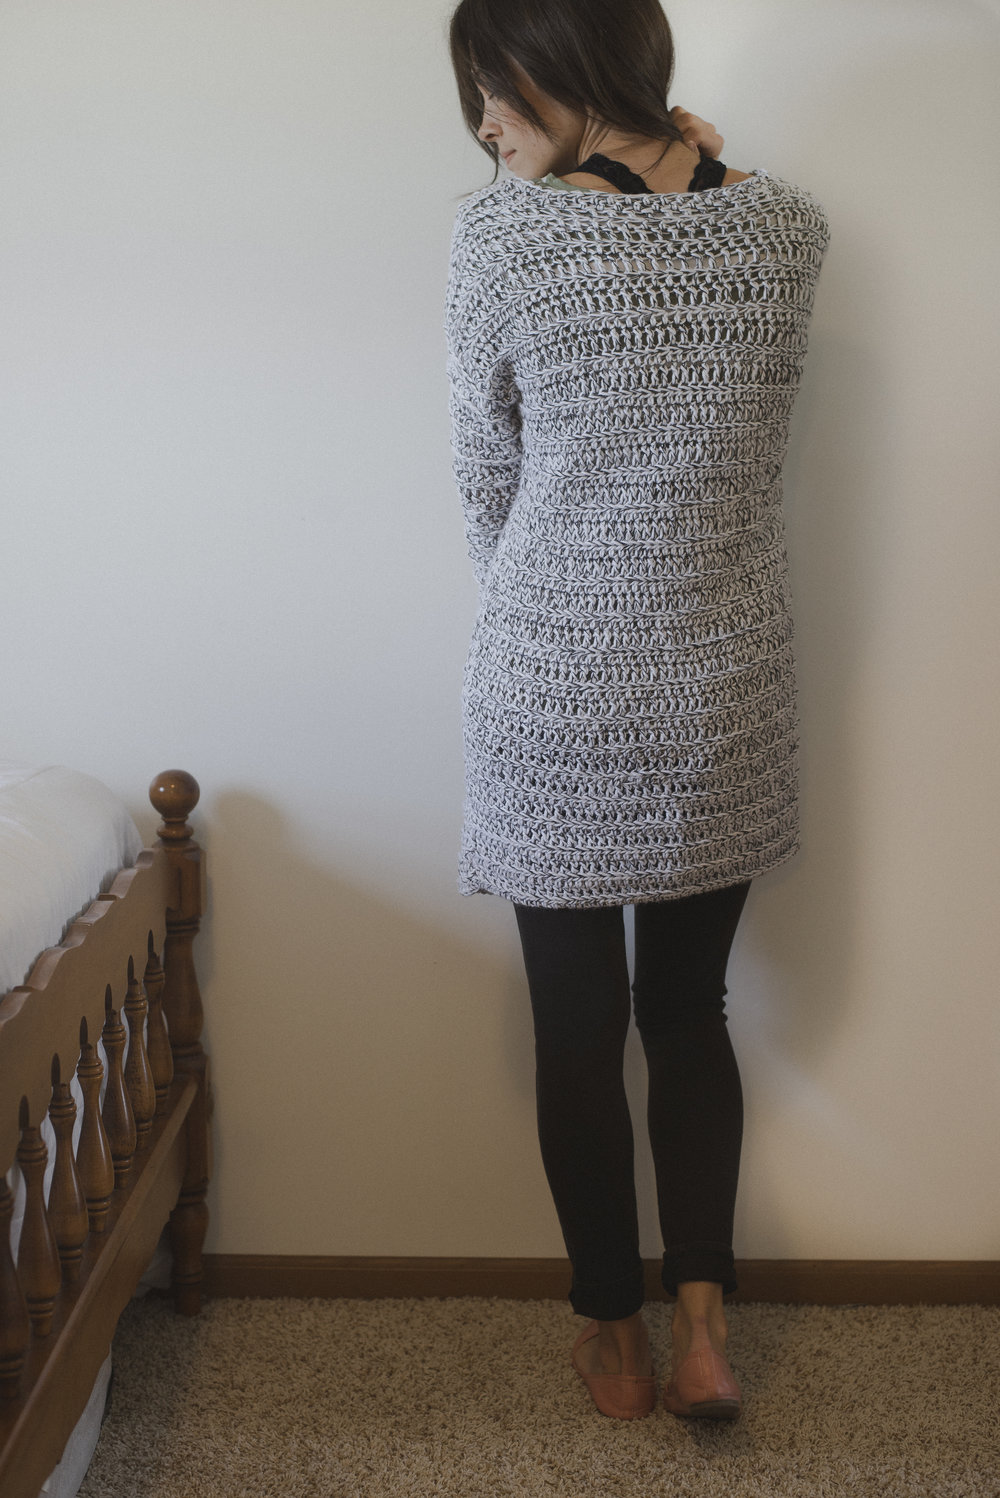 ce6eaaf7aef6 Free Crochet Pattern for the Marley Cardi - A Long   Chunky Cardigan ...